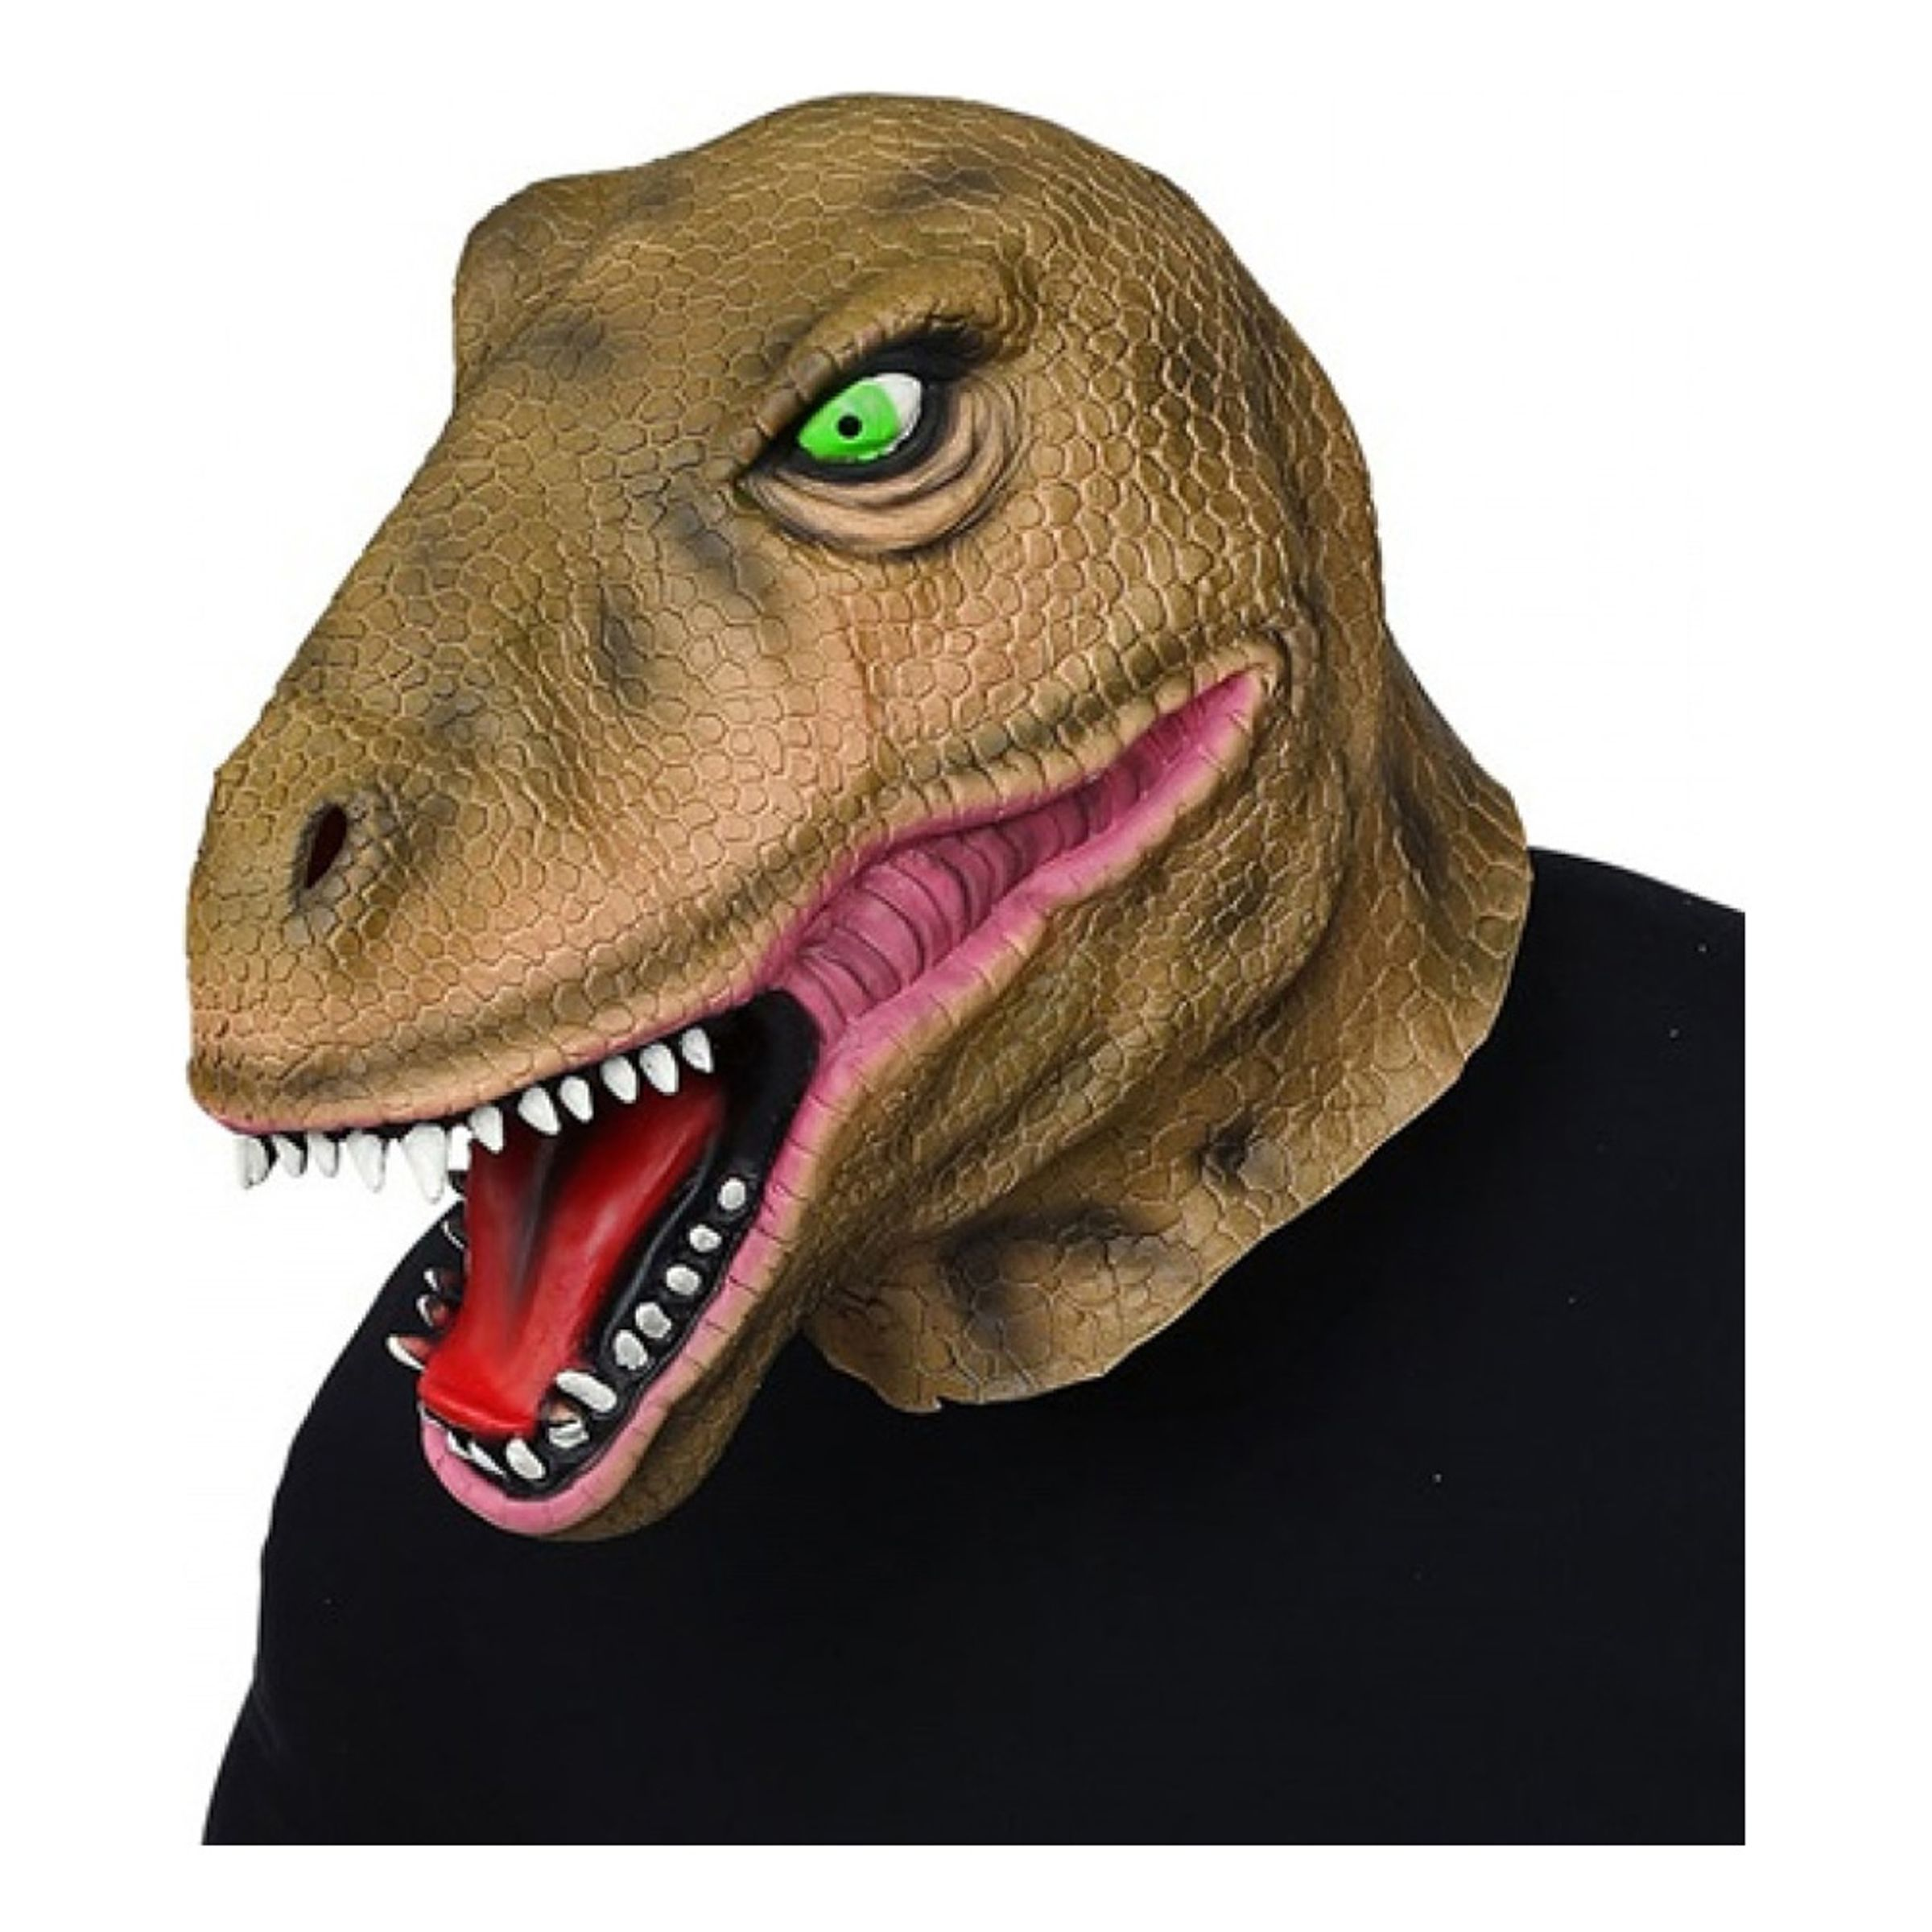 Dinosaurie - T-Rex Deluxe Mask - One size